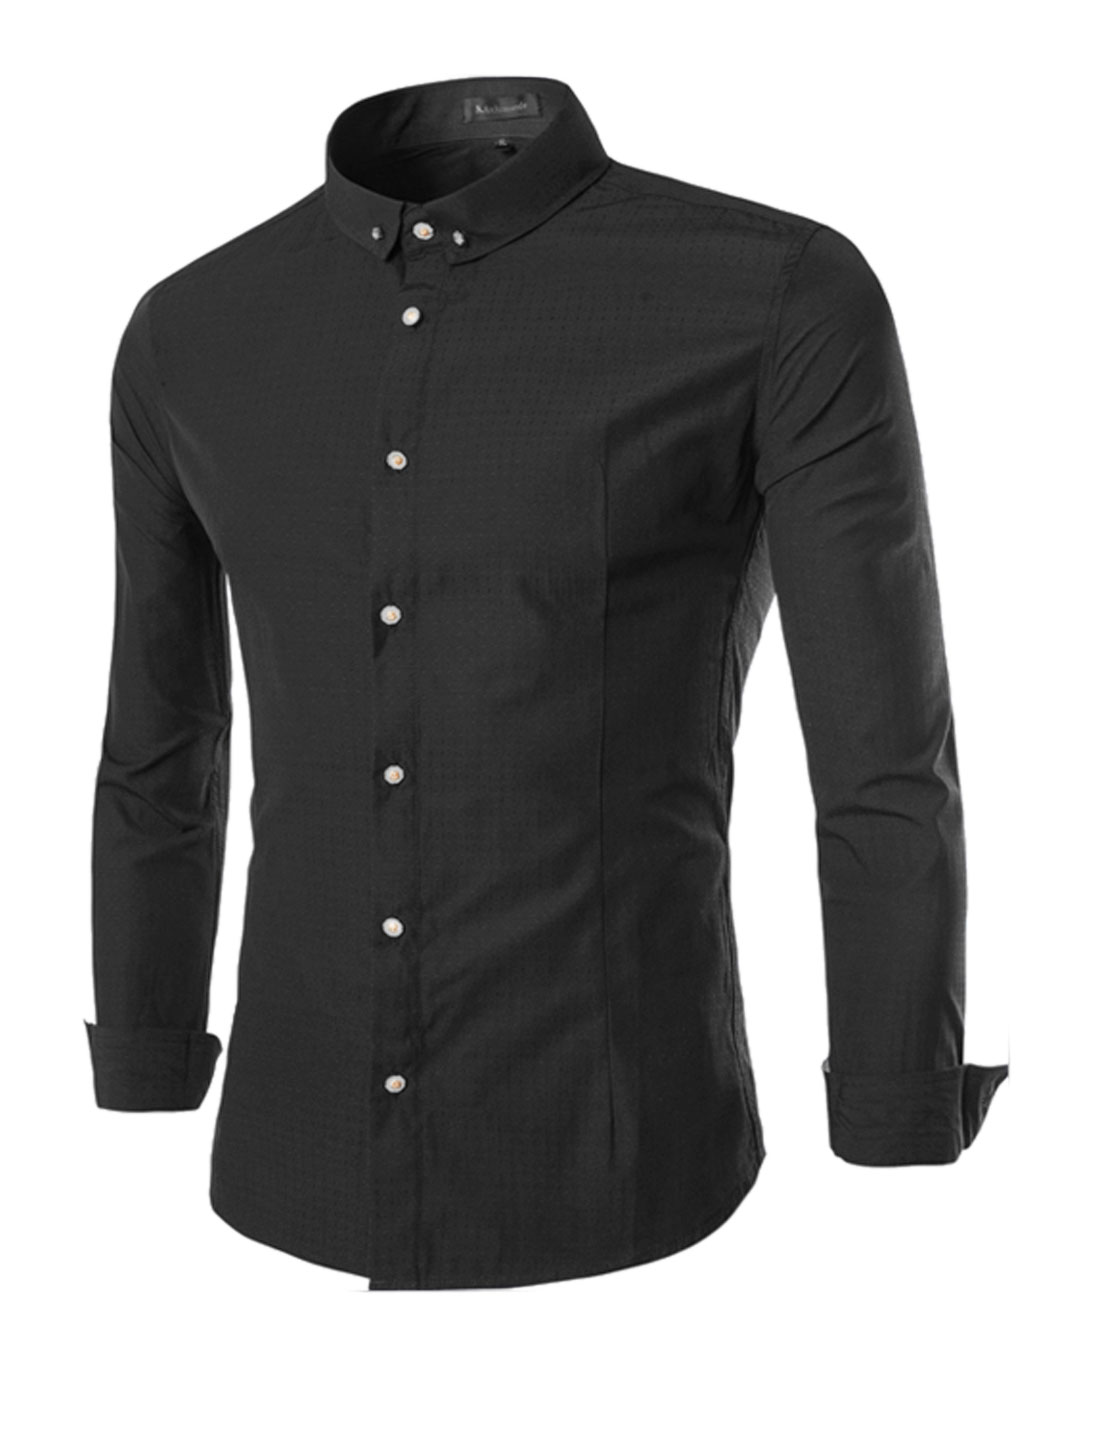 Men Button Down Stitching Long Sleeves Slim Cut Casual Shirt Black S